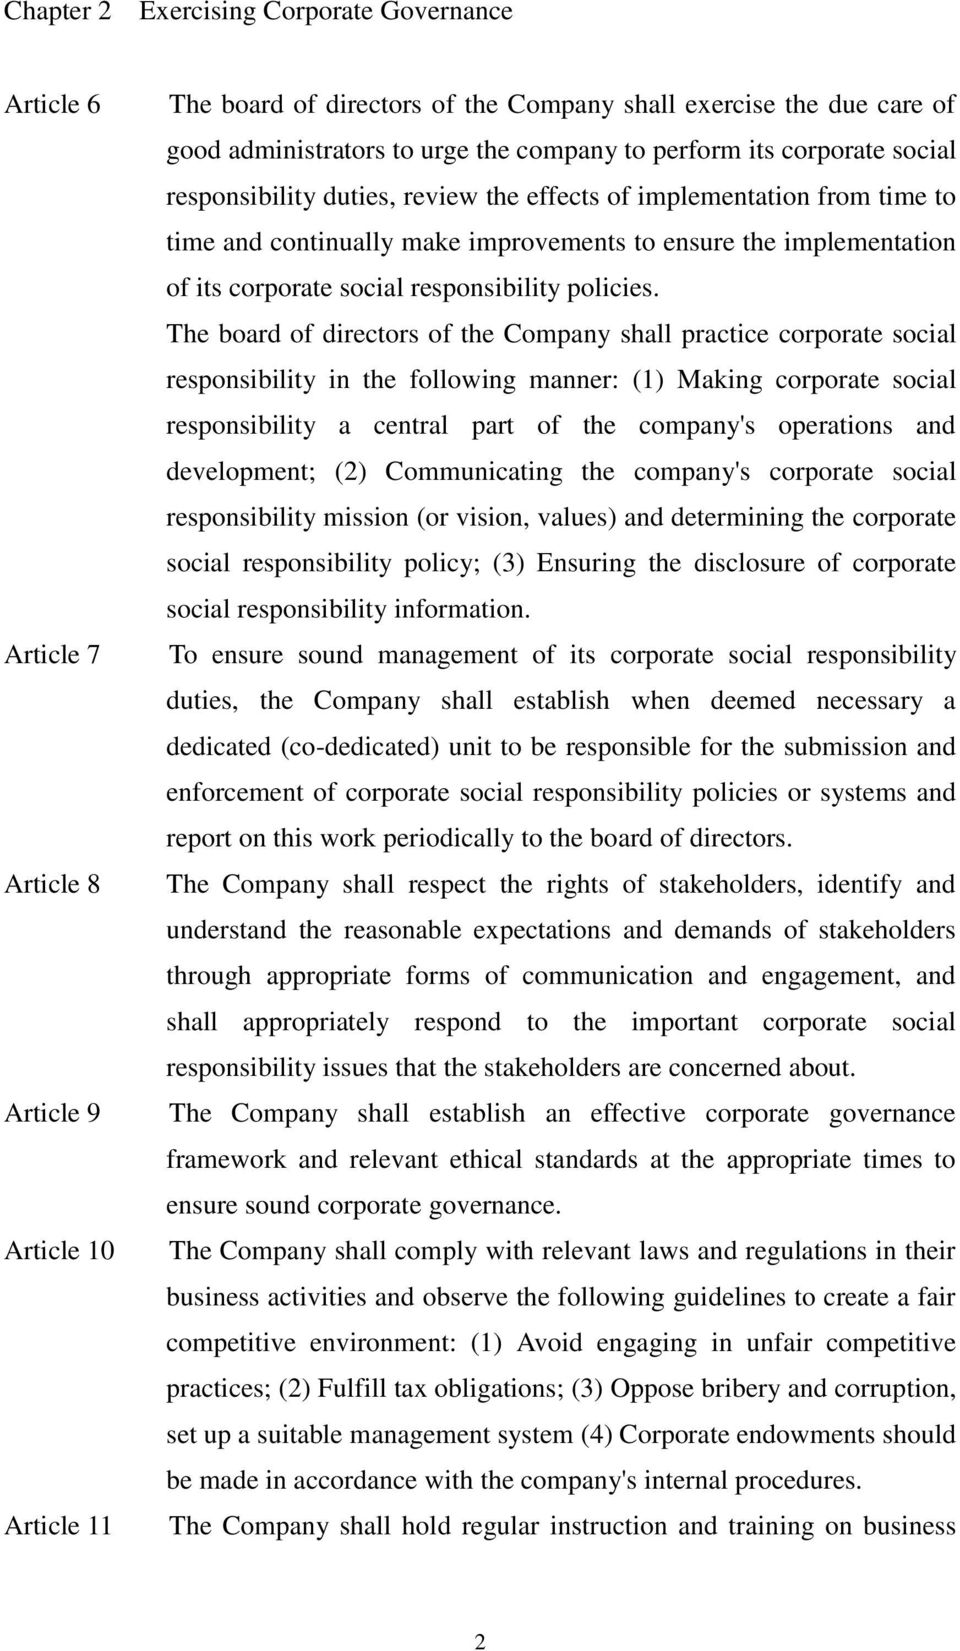 corporate social responsibility policies.